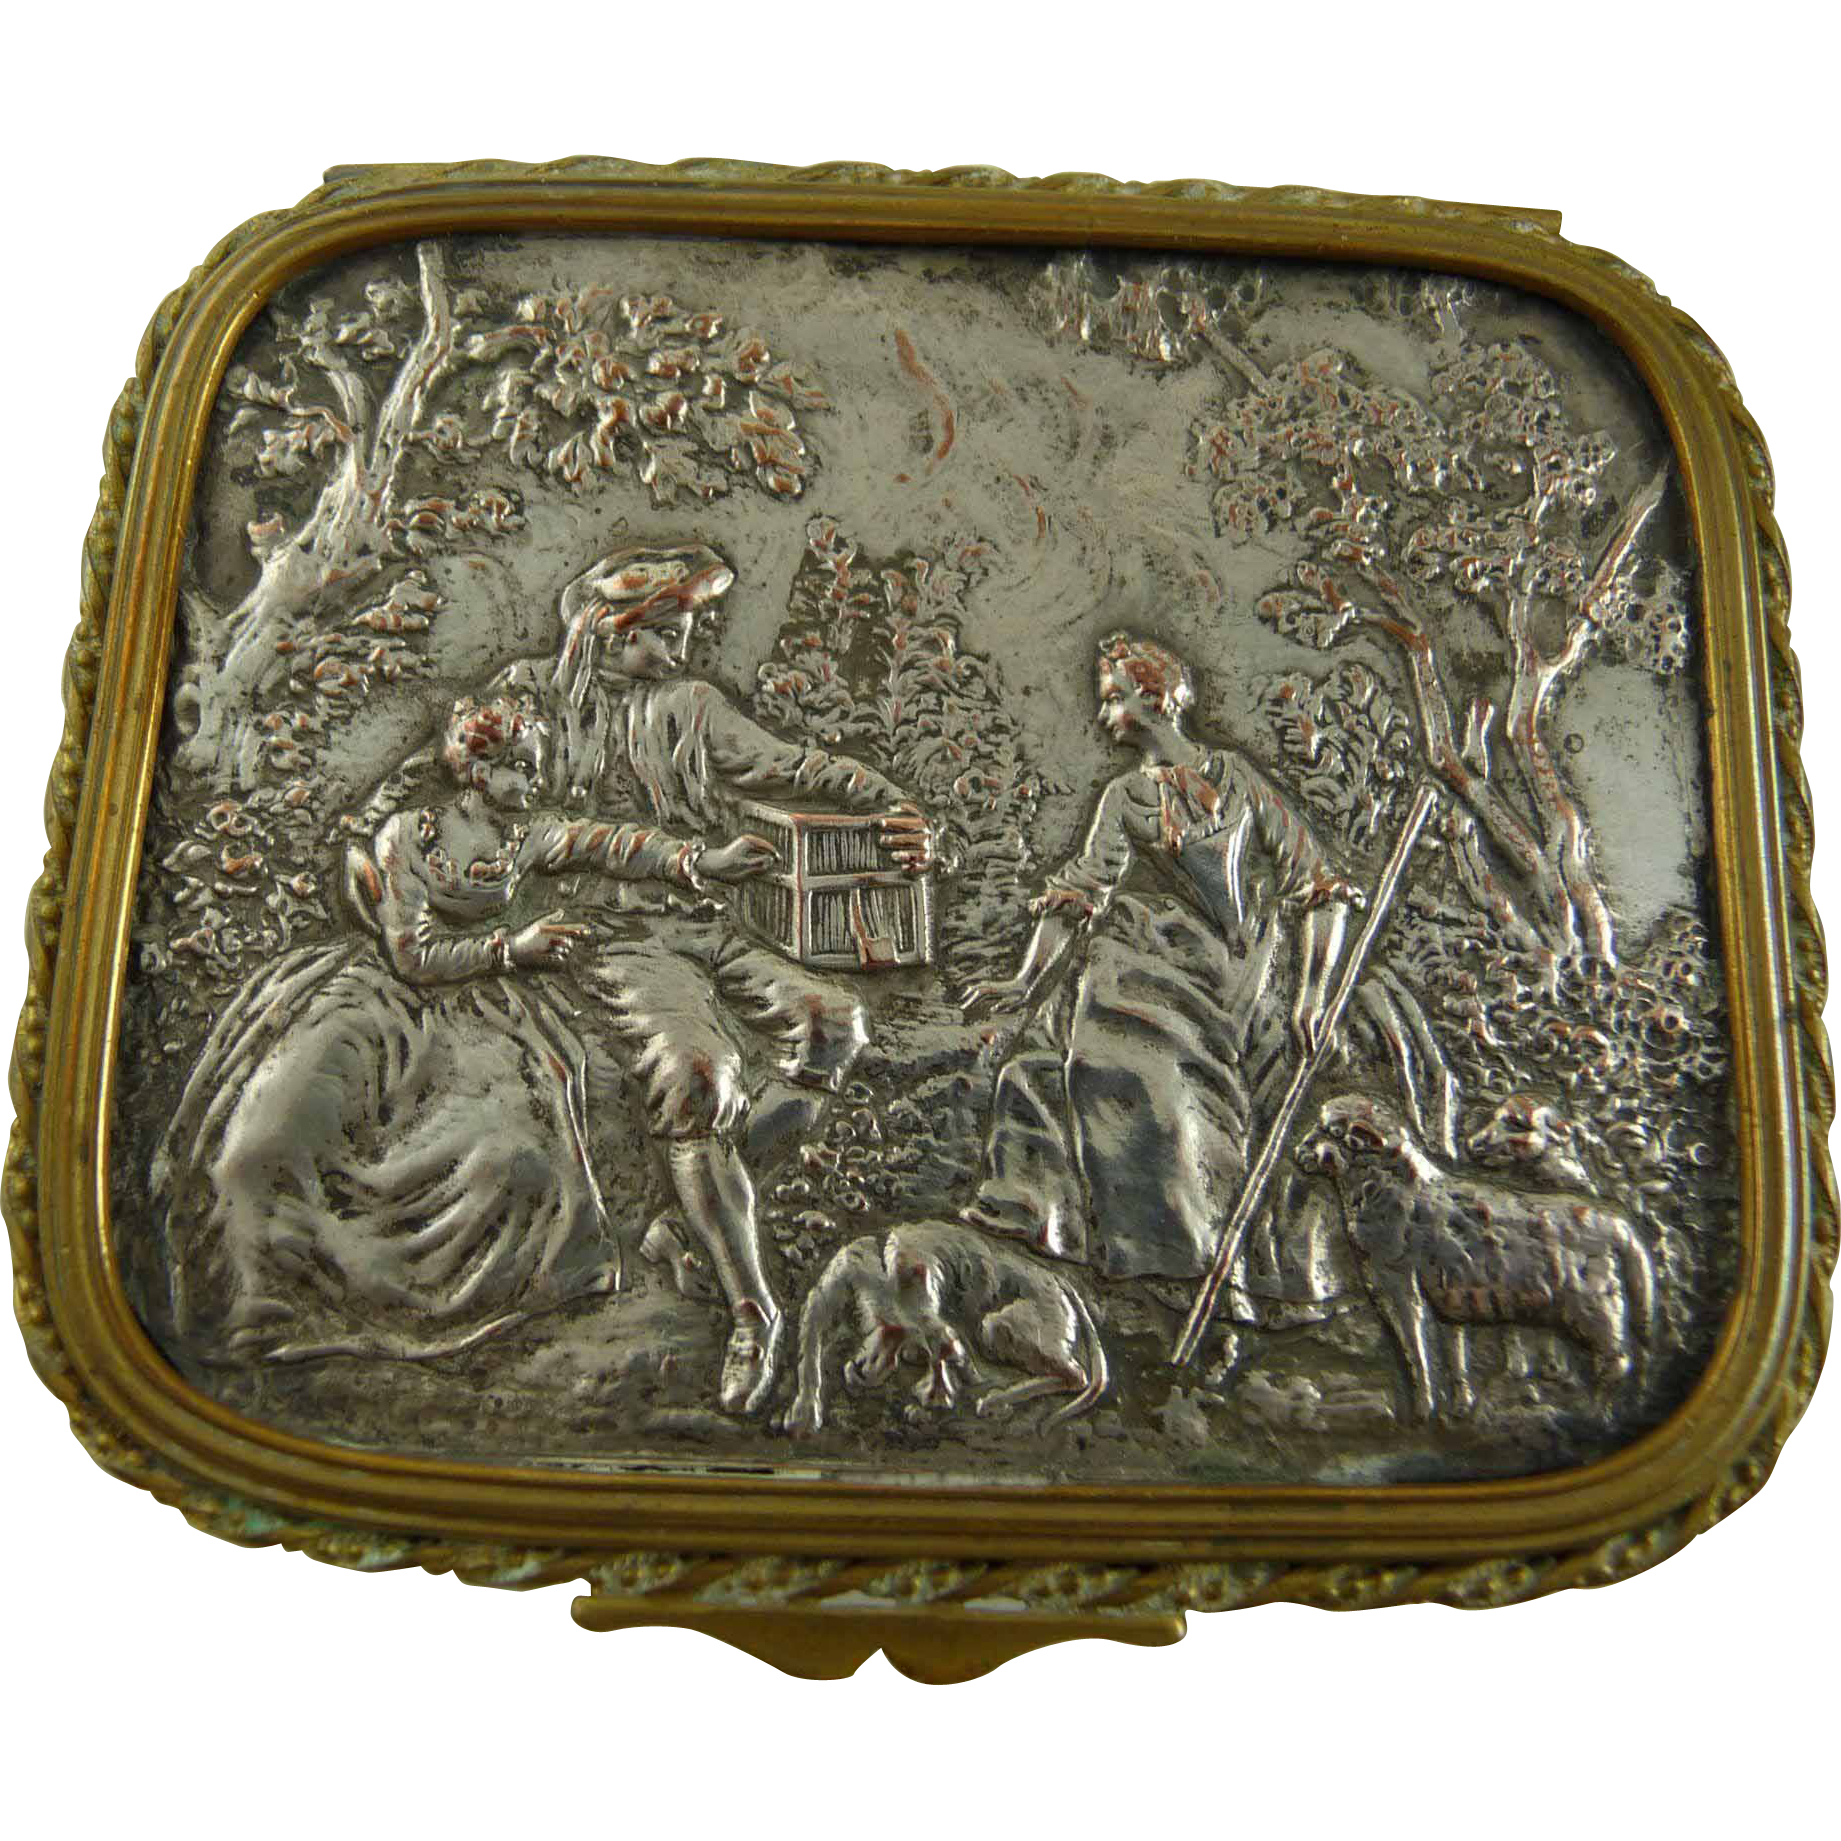 Vintage Brass Vanity Box with Pastoral Scene